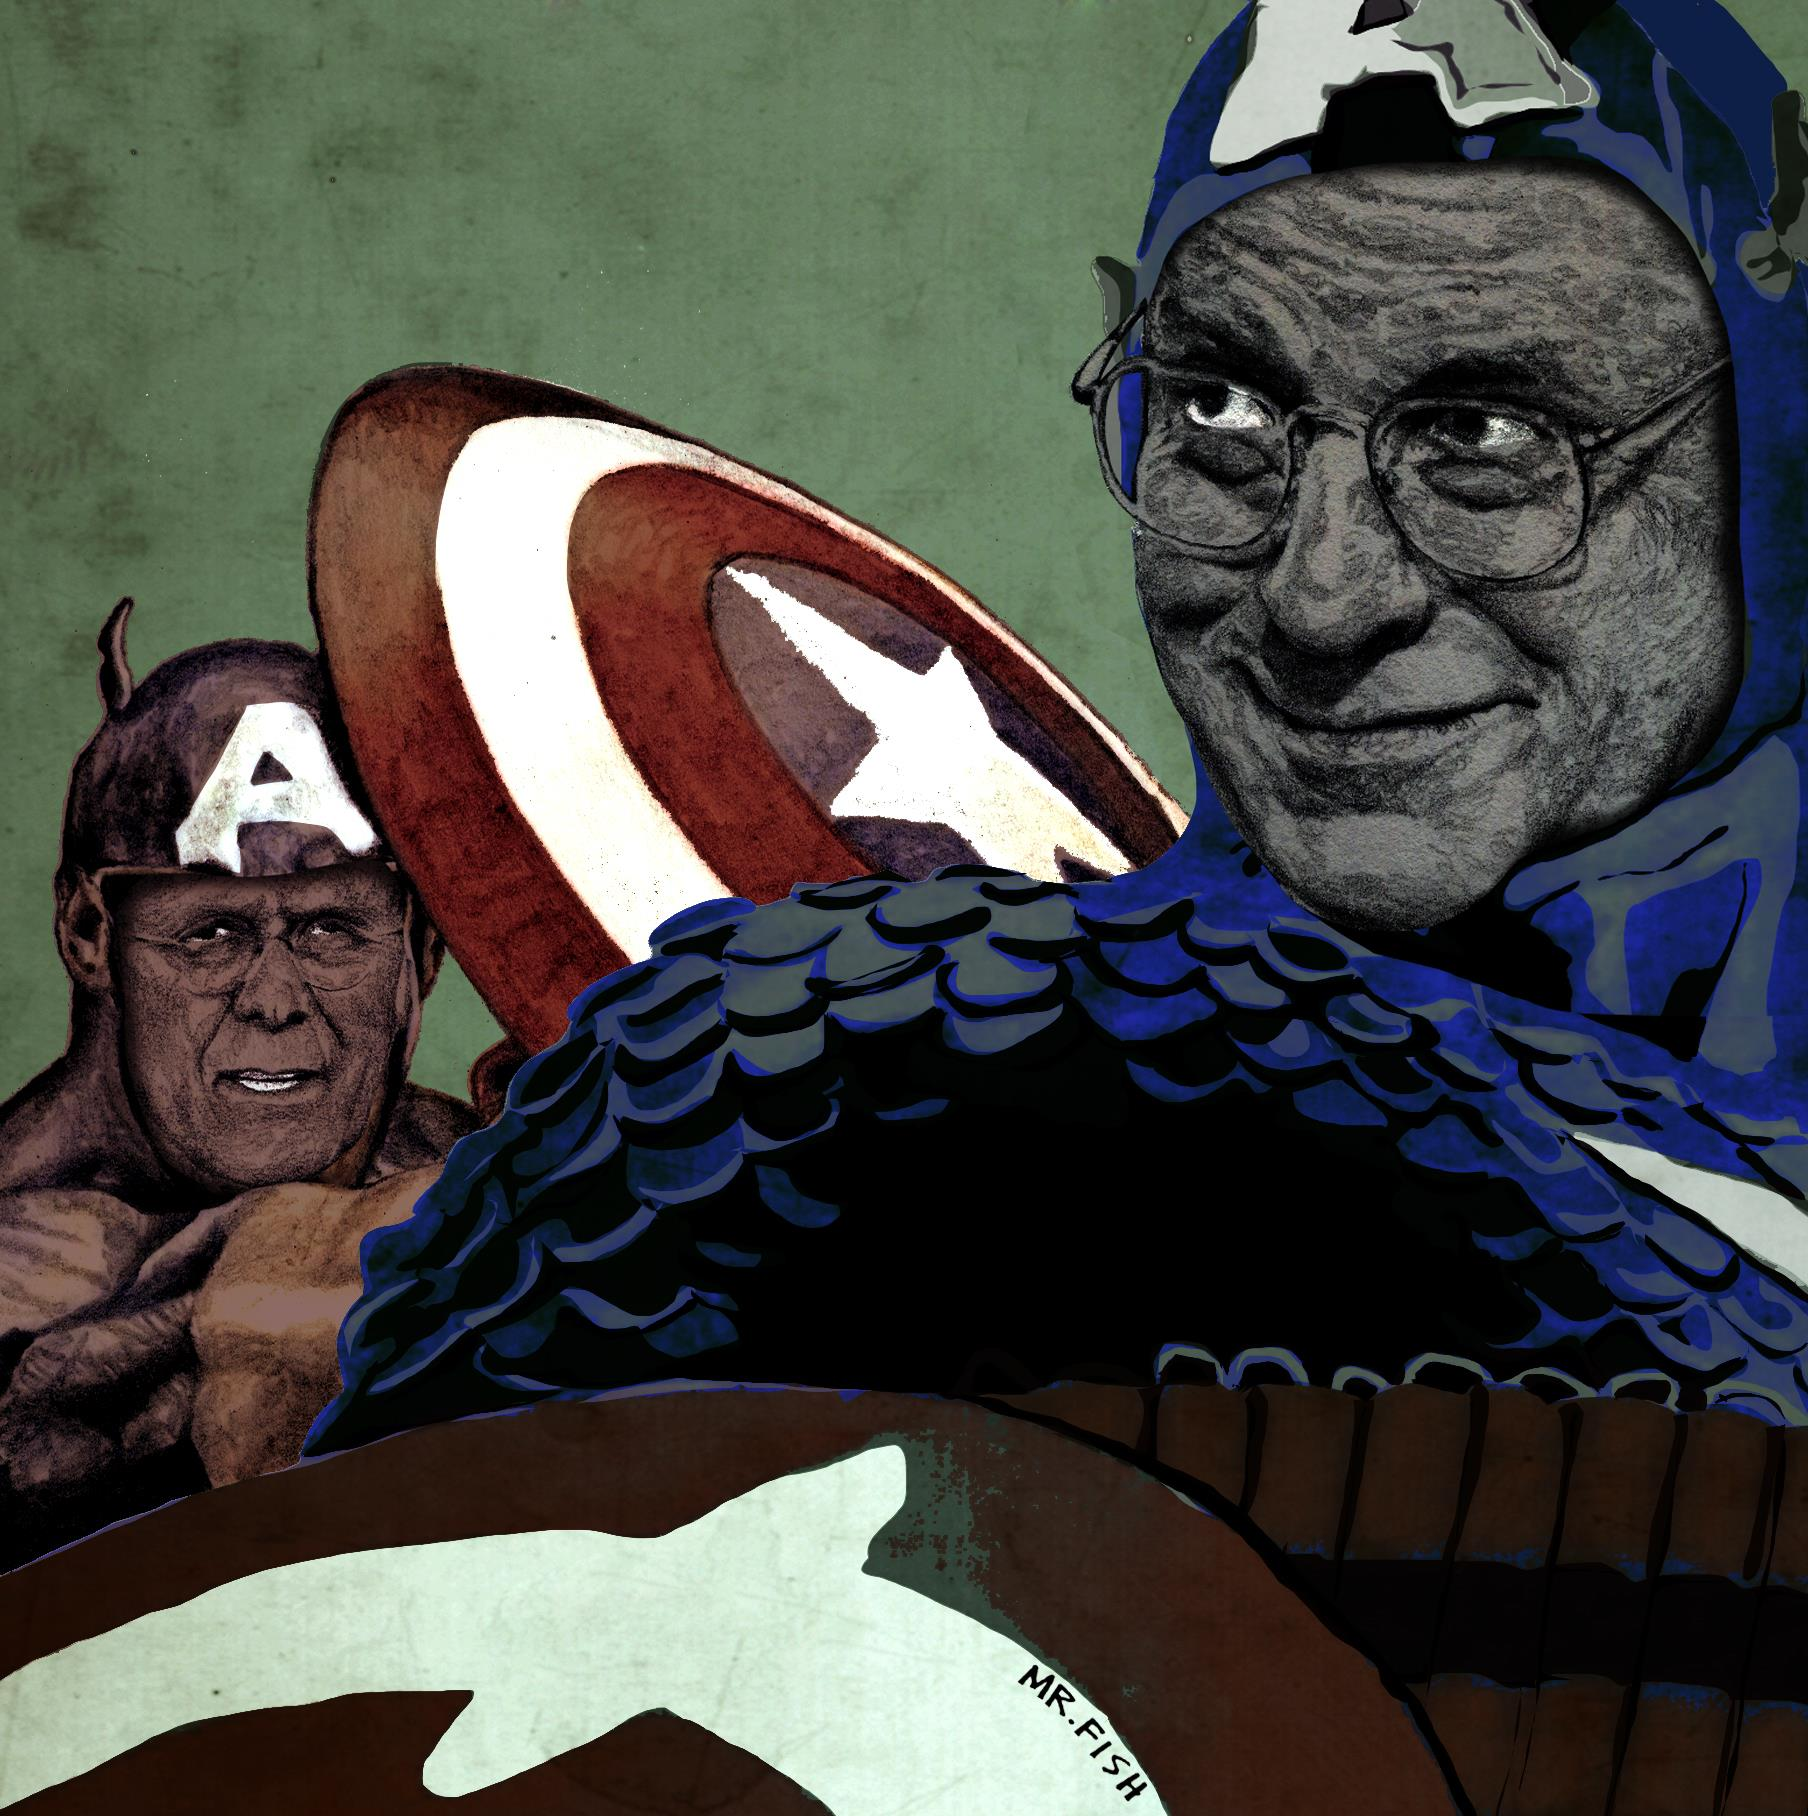 Captains America Dick Cheney and Donald Rumsfeld, rigged to self-destruct. By Mr